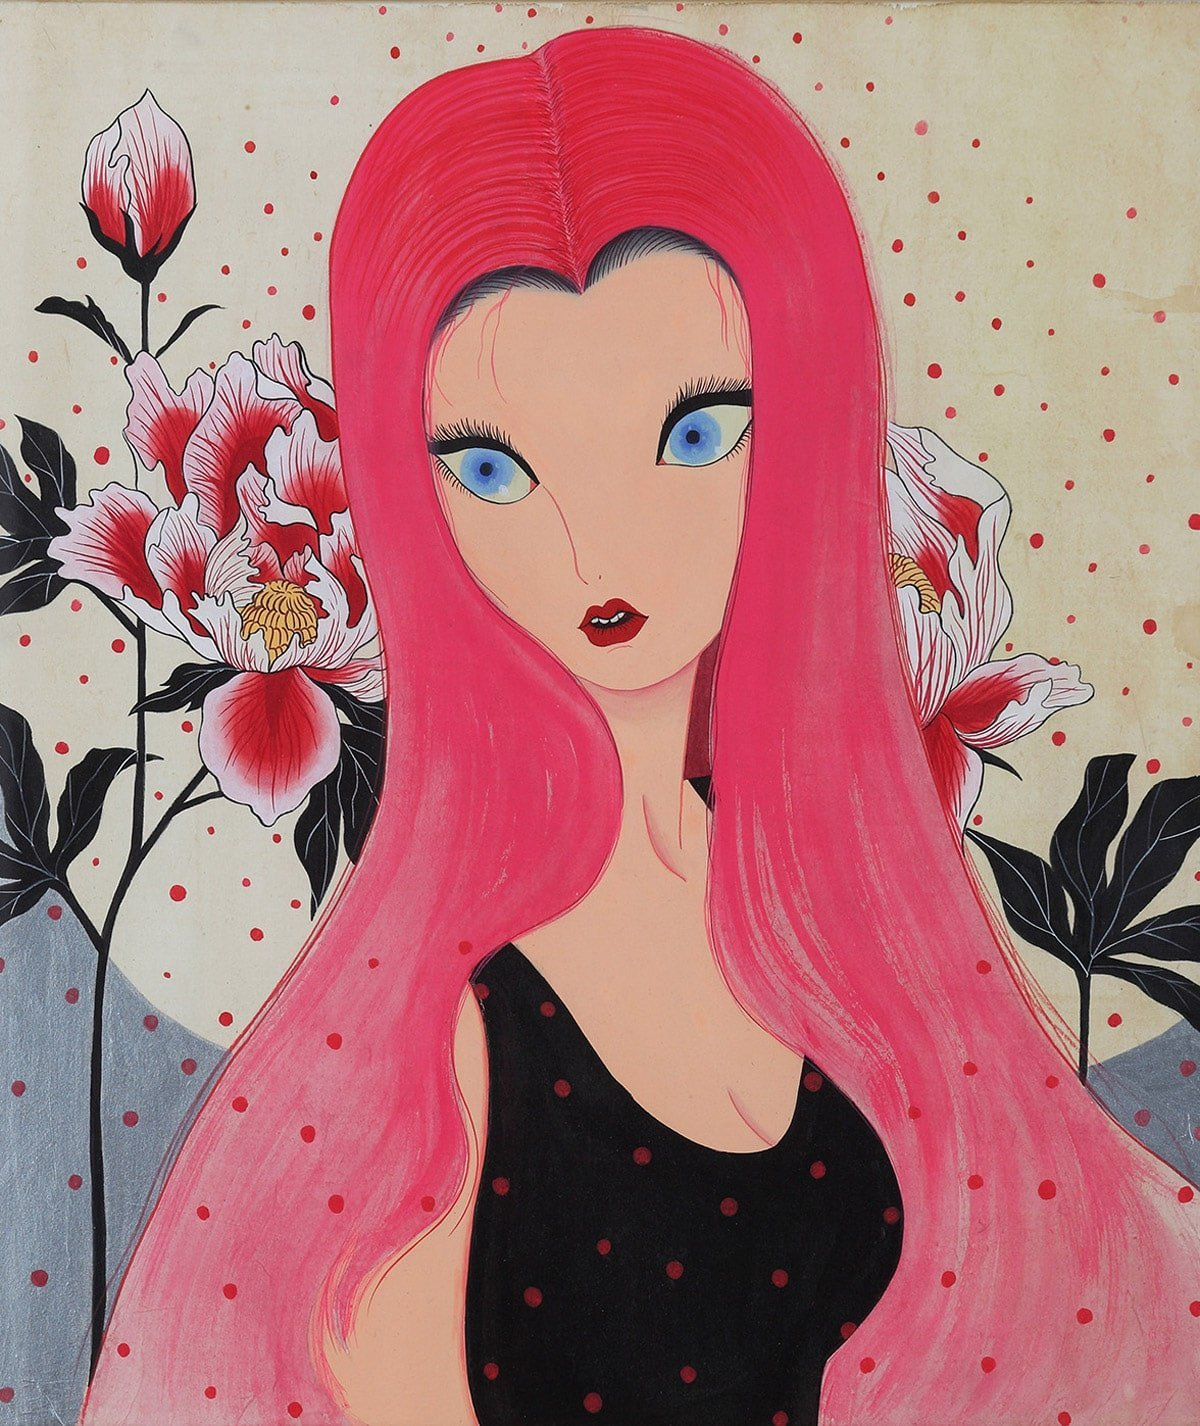 An image of an illustration by Korean artist Jung Koal of a lady with blue cat eyes with long pink hair. The background has pink flowers. Across the portrait are darker pink/red dots.